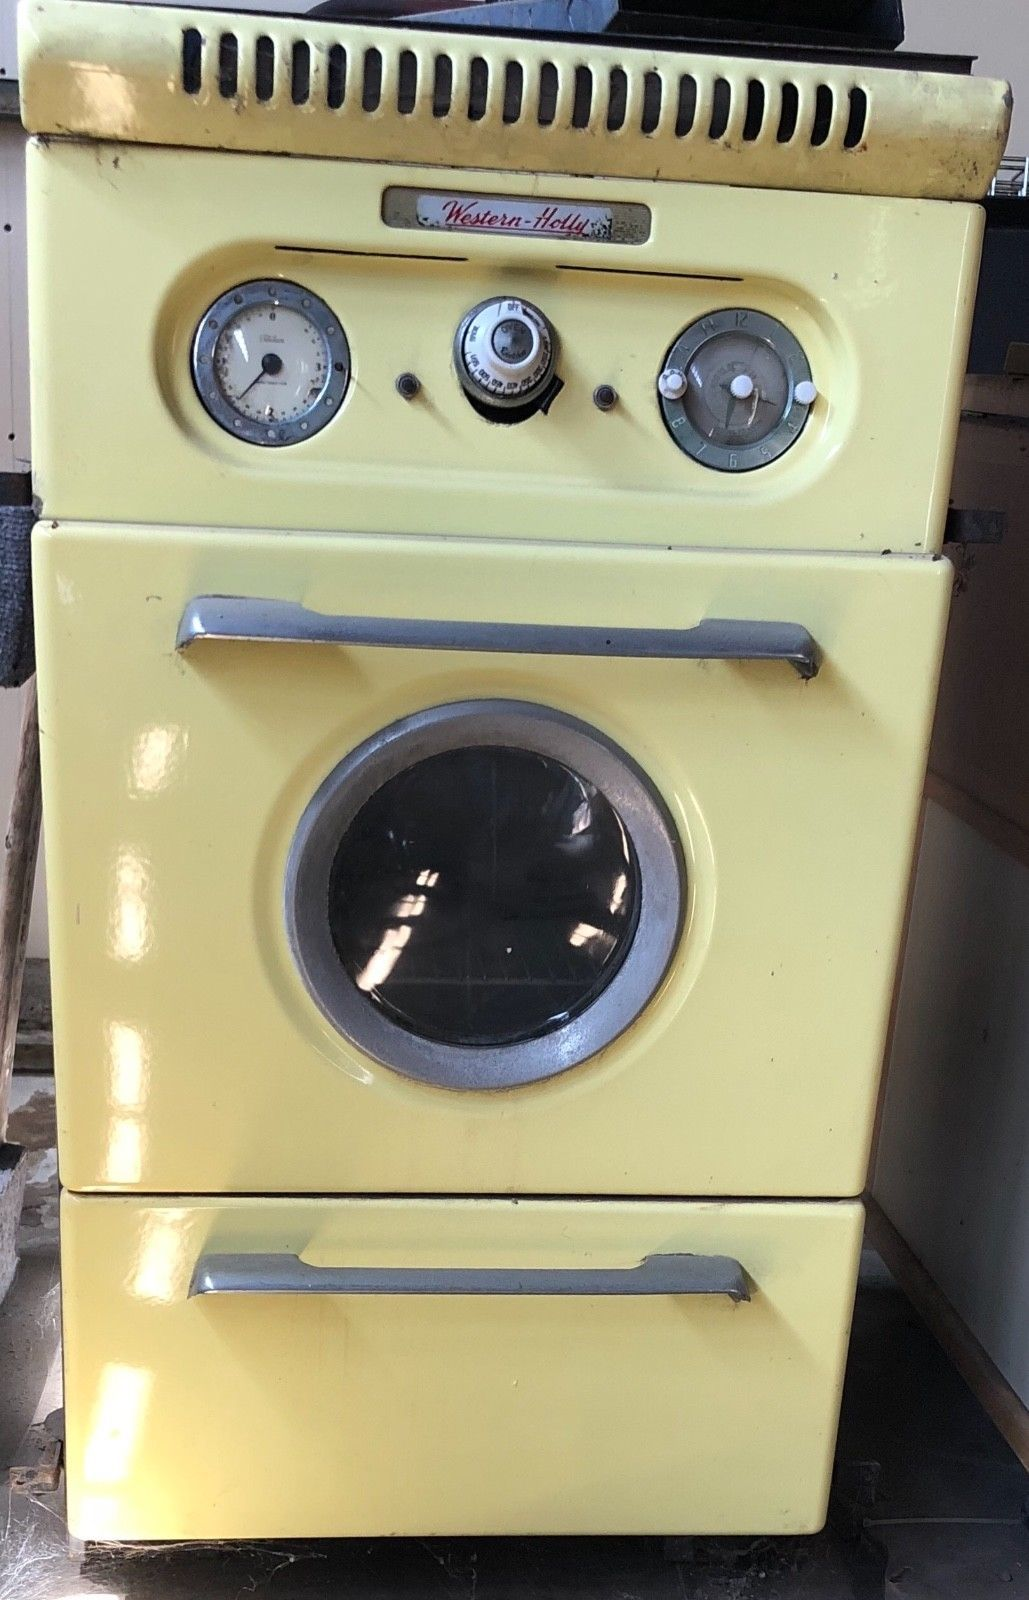 Vintage Western Holly Built In Oven Bright Yellow Gas Round Porthole Ebay Built In Gas Ovens Vintage Appliances Vintage